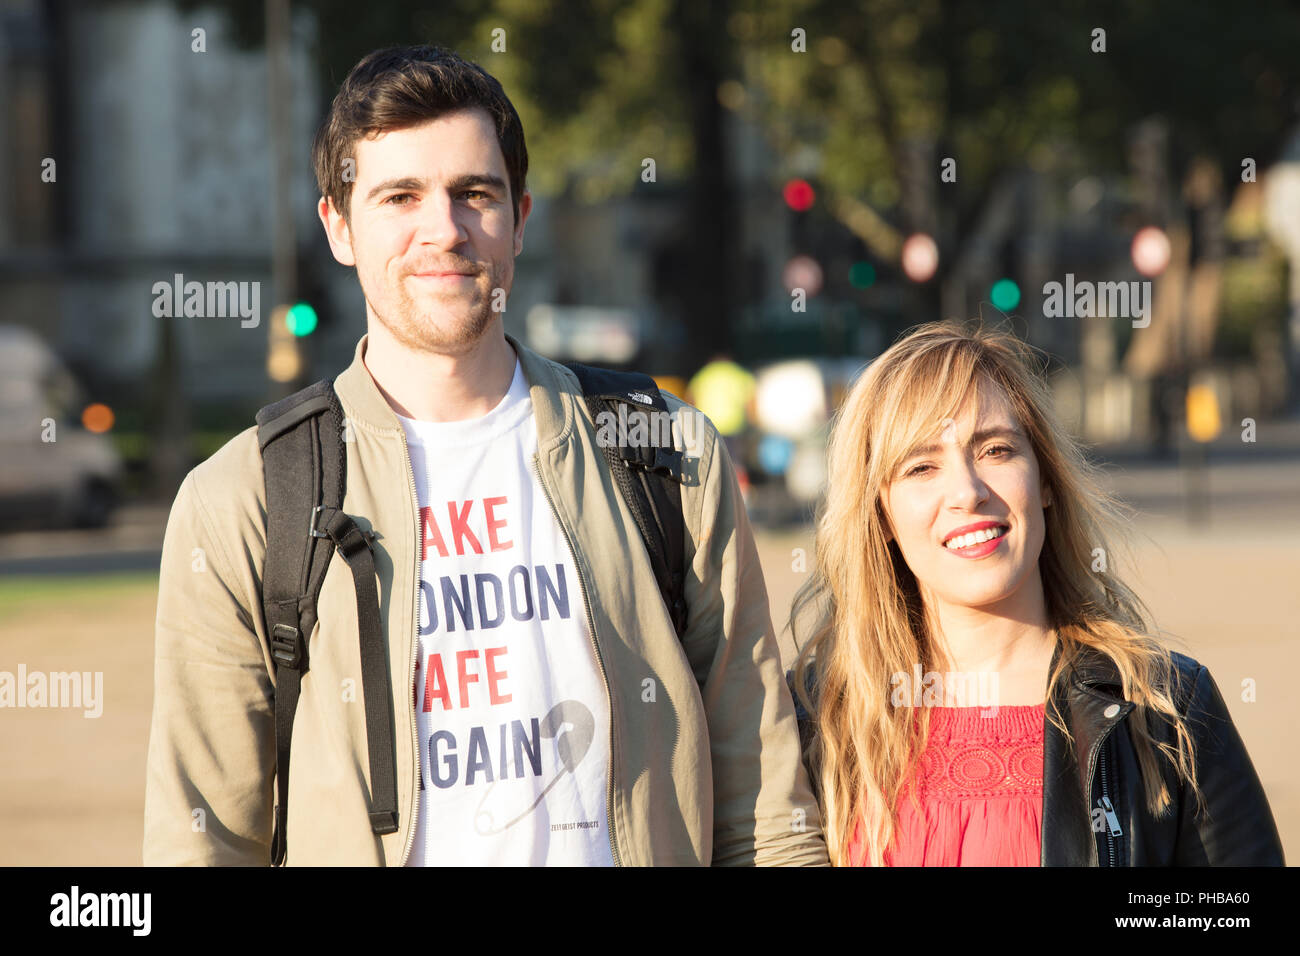 Organiser Yanny Bruere and Michella, just before launching the Sadiq Khan Bikini blimp in Parliament Square to mock the Mayor of London ban the bikini policy and to highlight the high crime rate in the capital Credit: joe Kuis/Alamy Live News - Stock Image